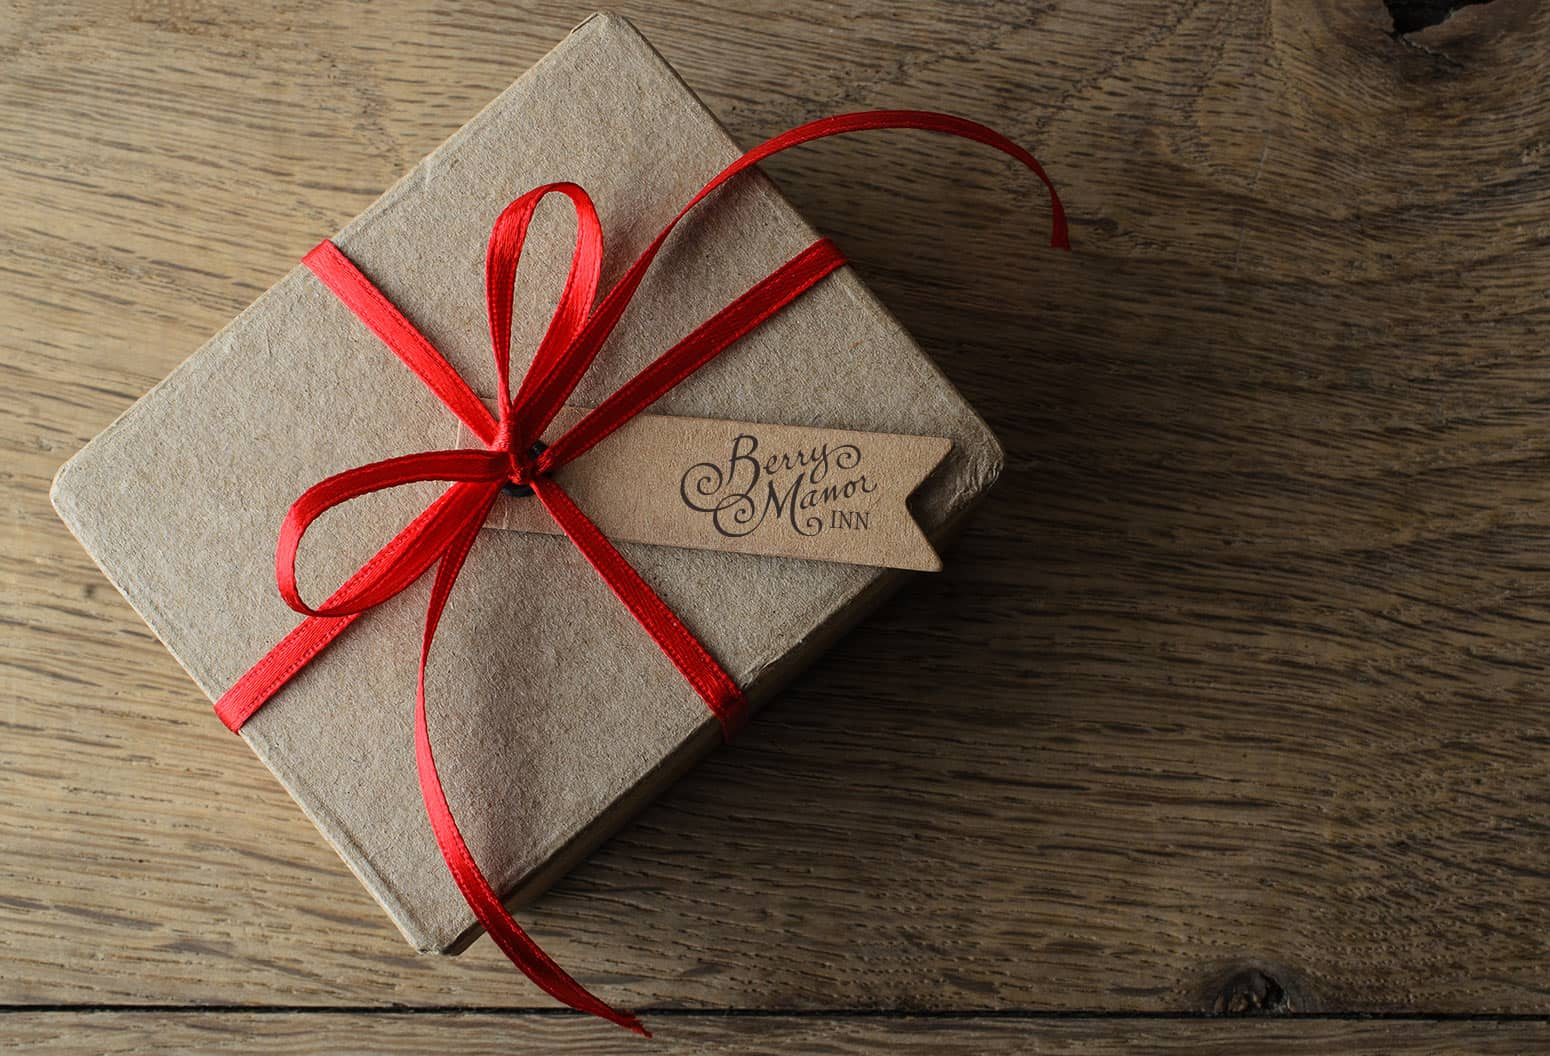 Gift Box with red bow and Berry Manor Inn logo